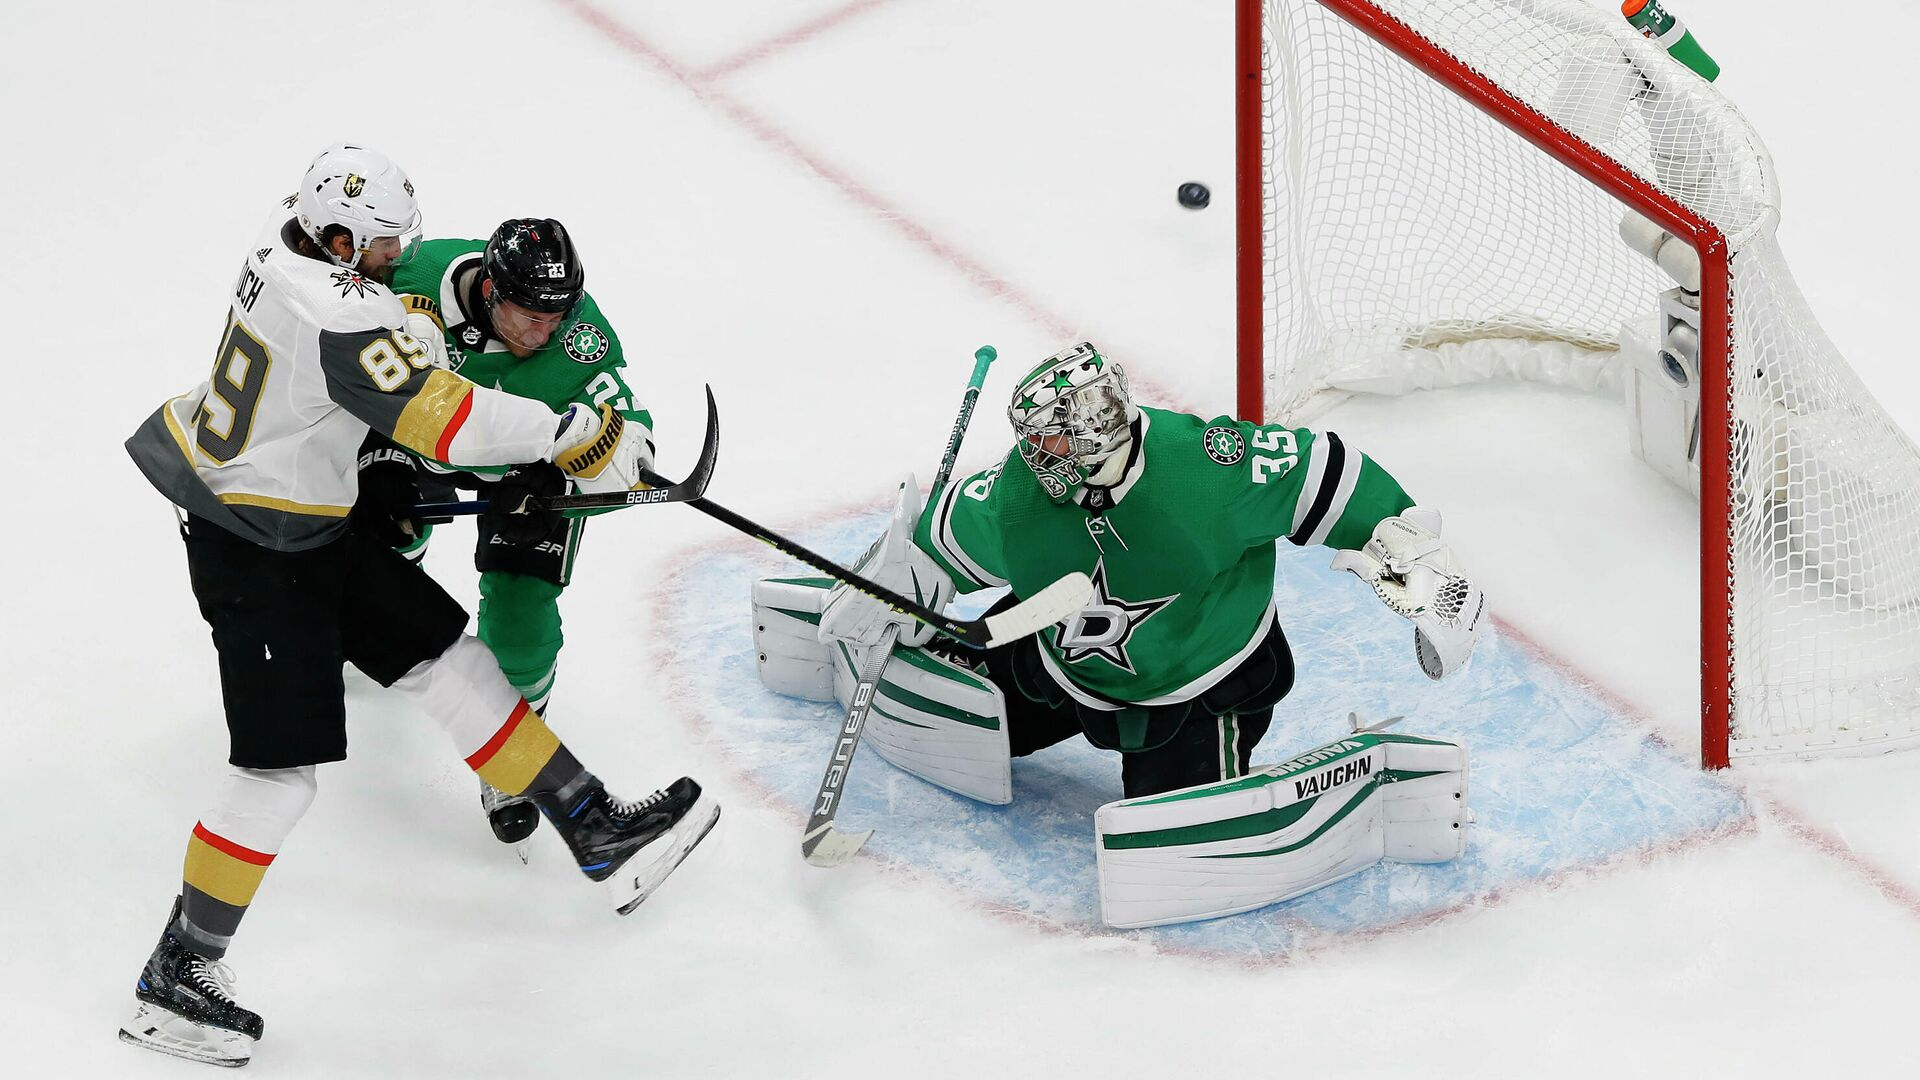 September 12, 2020; Edmonton, Alberta, CAN; Vegas Golden Knights right wing Alex Tuch (89) shoots against the defense of Dallas Stars defenseman Esa Lindell (23) as goaltender Anton Khudobin (35) defends the goal during the first period in game four of the Western Conference Final of the 2020 Stanley Cup Playoffs at Rogers Place. Mandatory Credit: Perry Nelson-USA TODAY Sports - РИА Новости, 1920, 13.09.2020